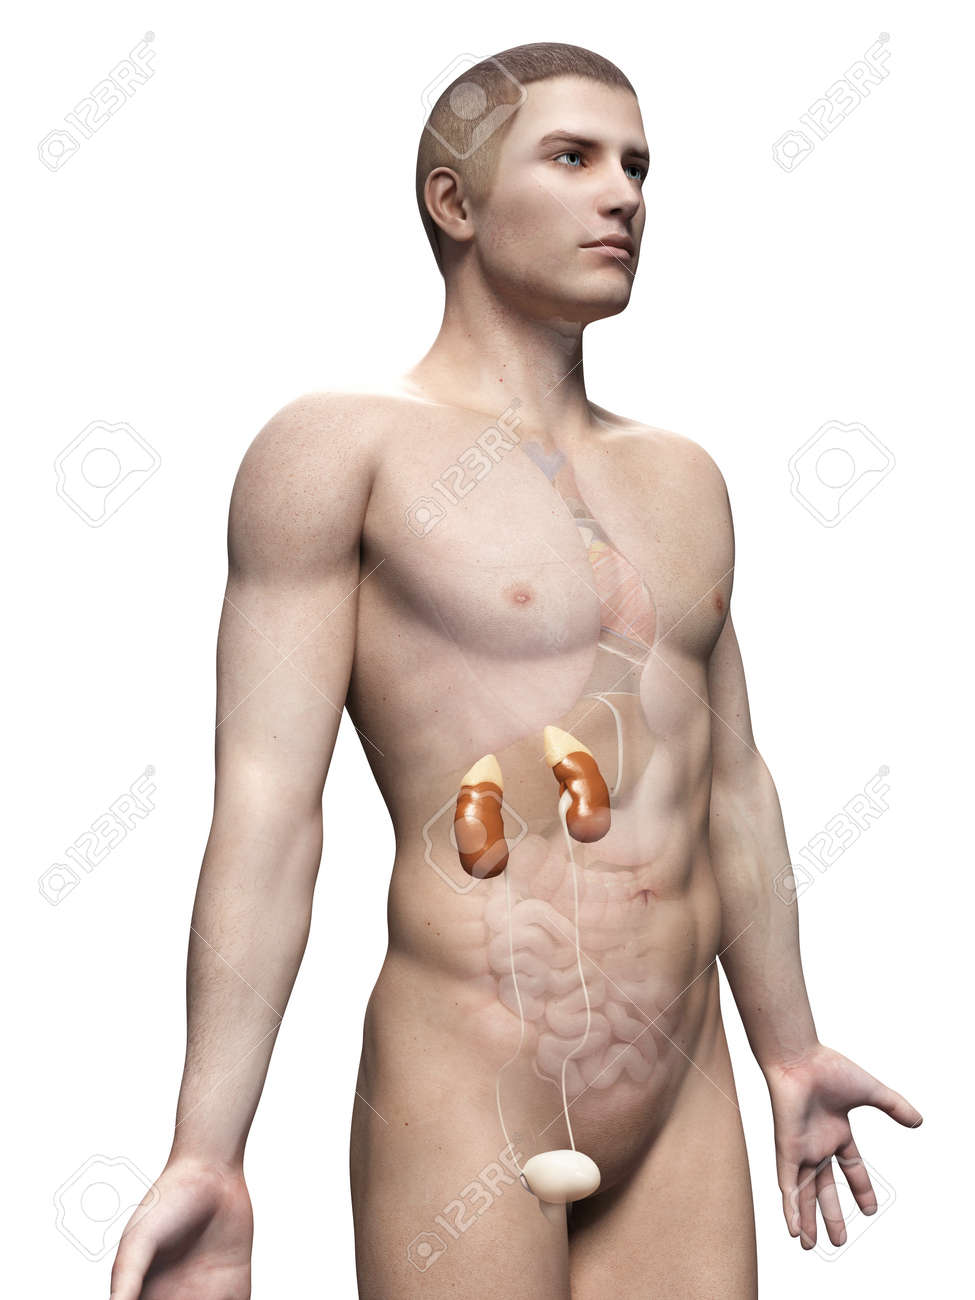 Male Anatomy Illustration - The Urinary System Stock Photo, Picture ...